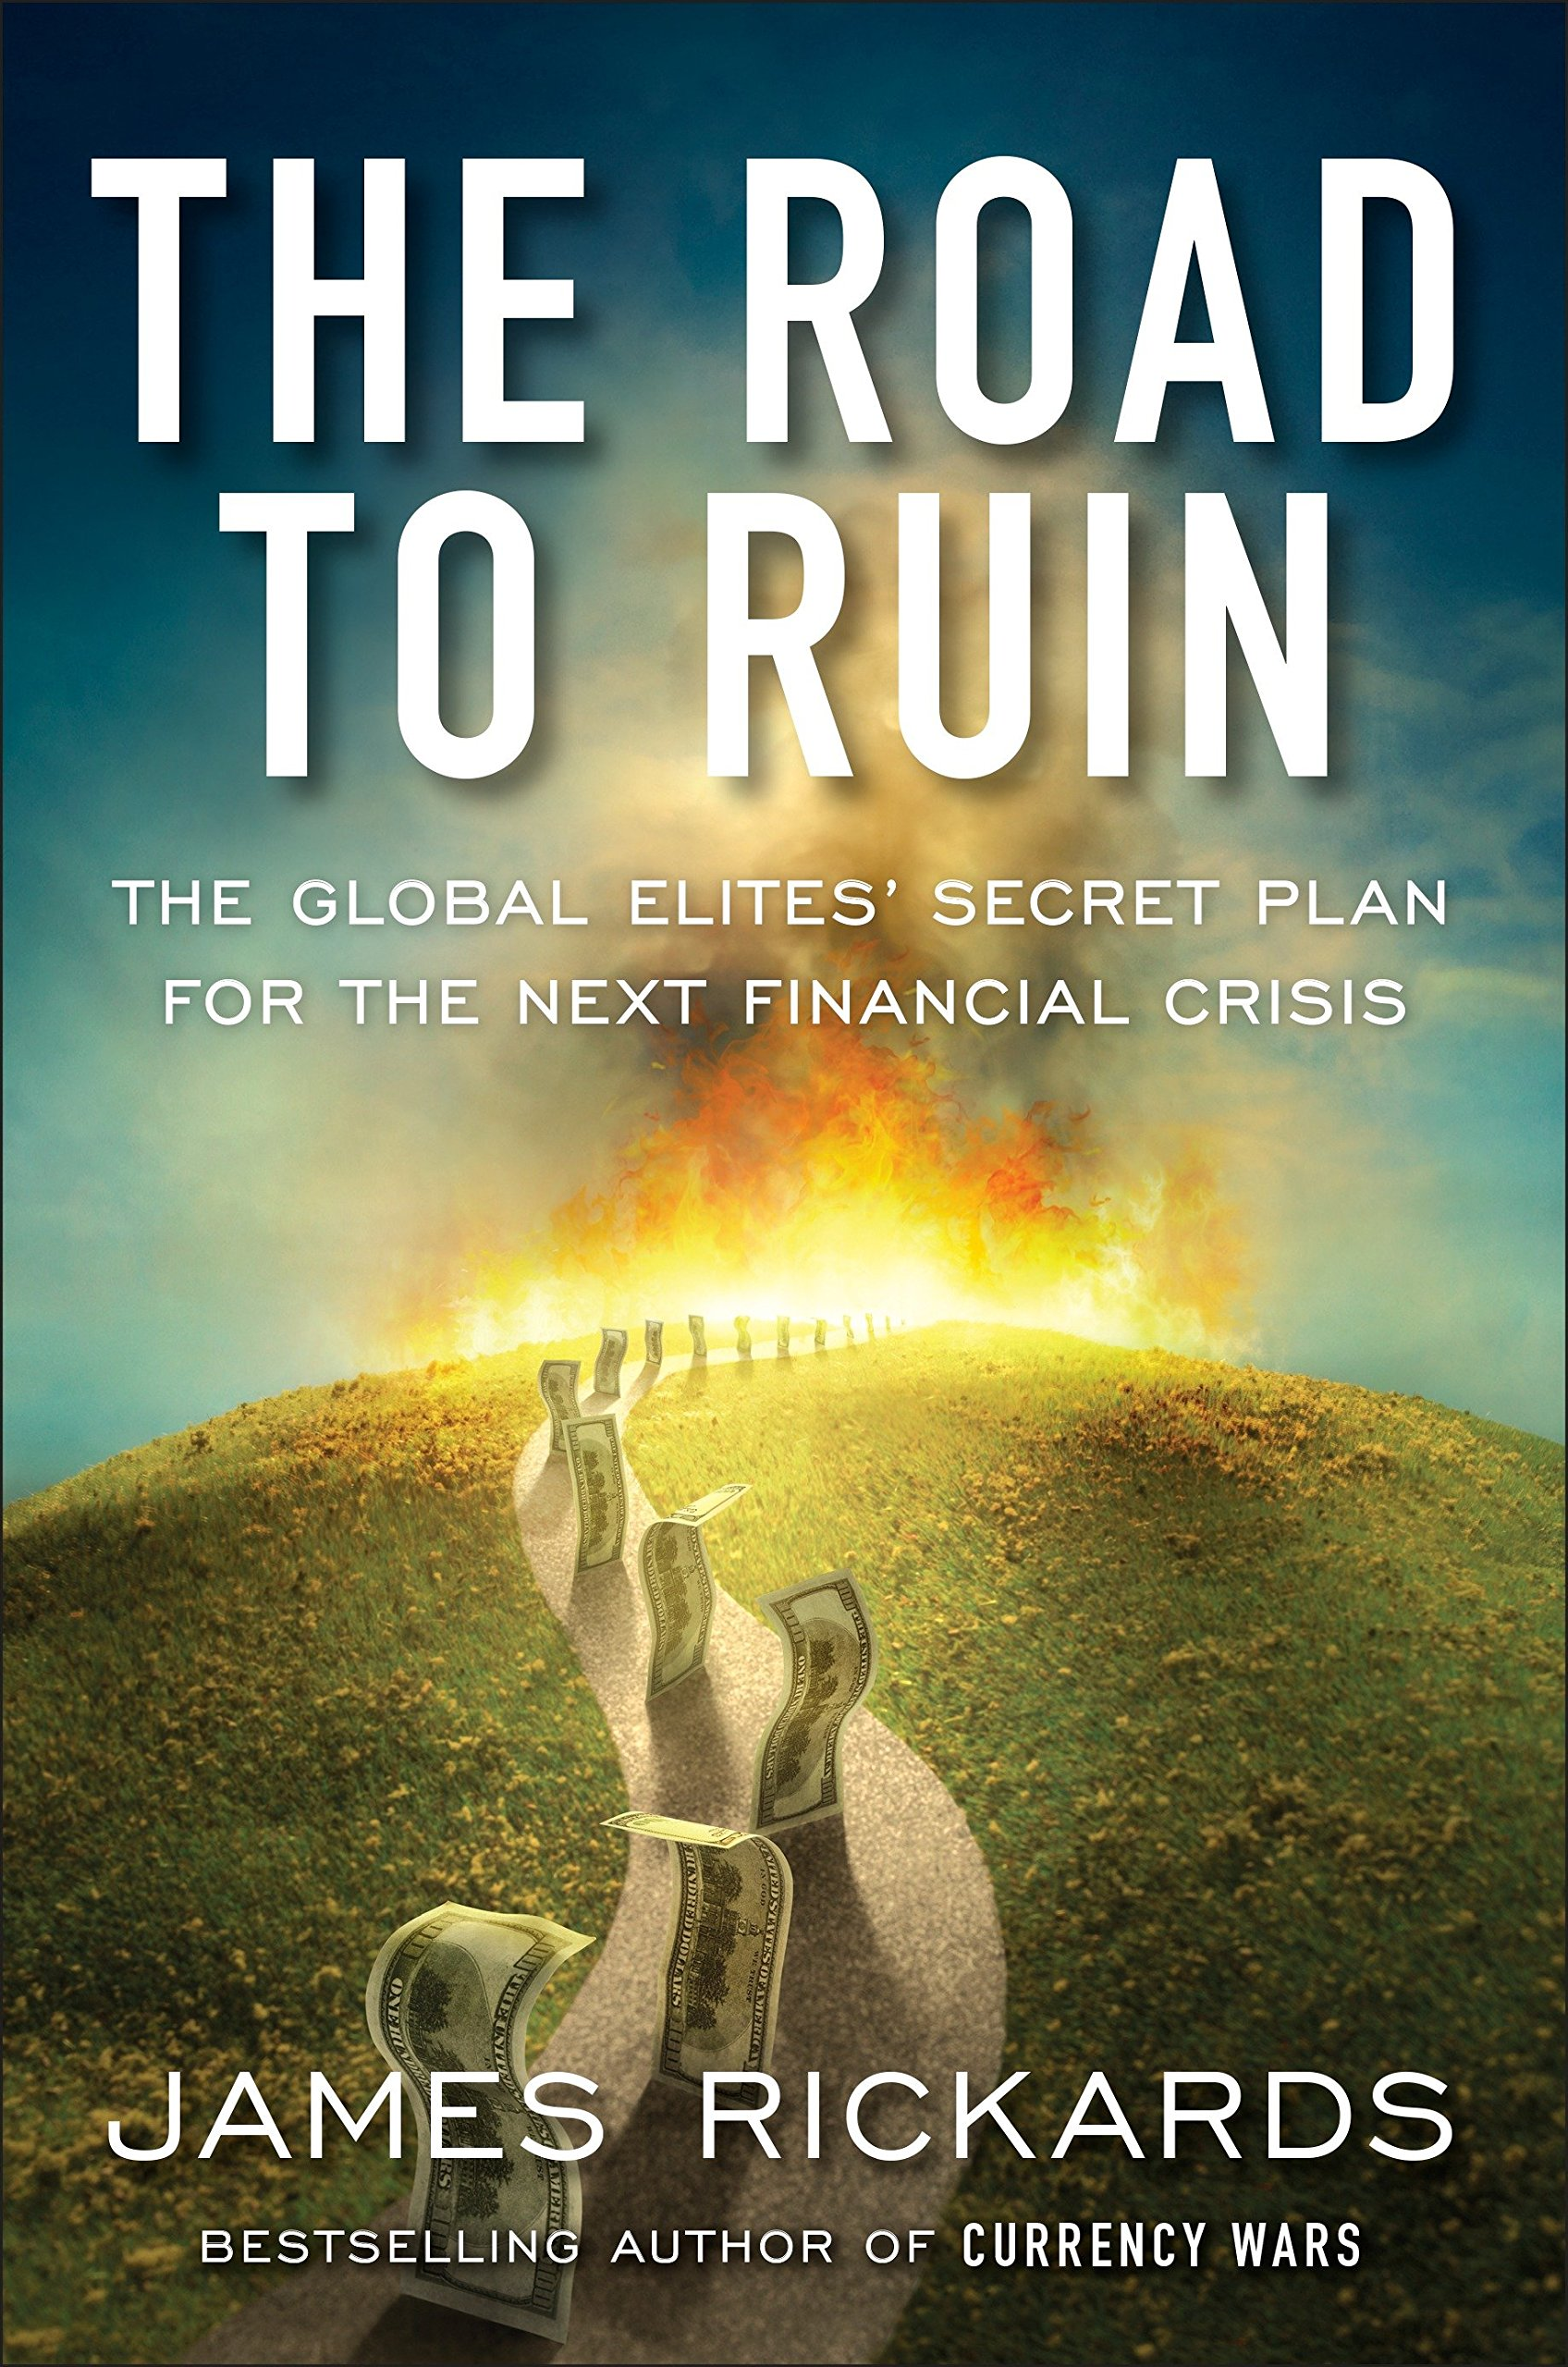 The Road to Ruin: The Global Elites' Secret Plan for the Next Financial  Crisis: James Rickards: 9781591848080: Amazon.com: Books